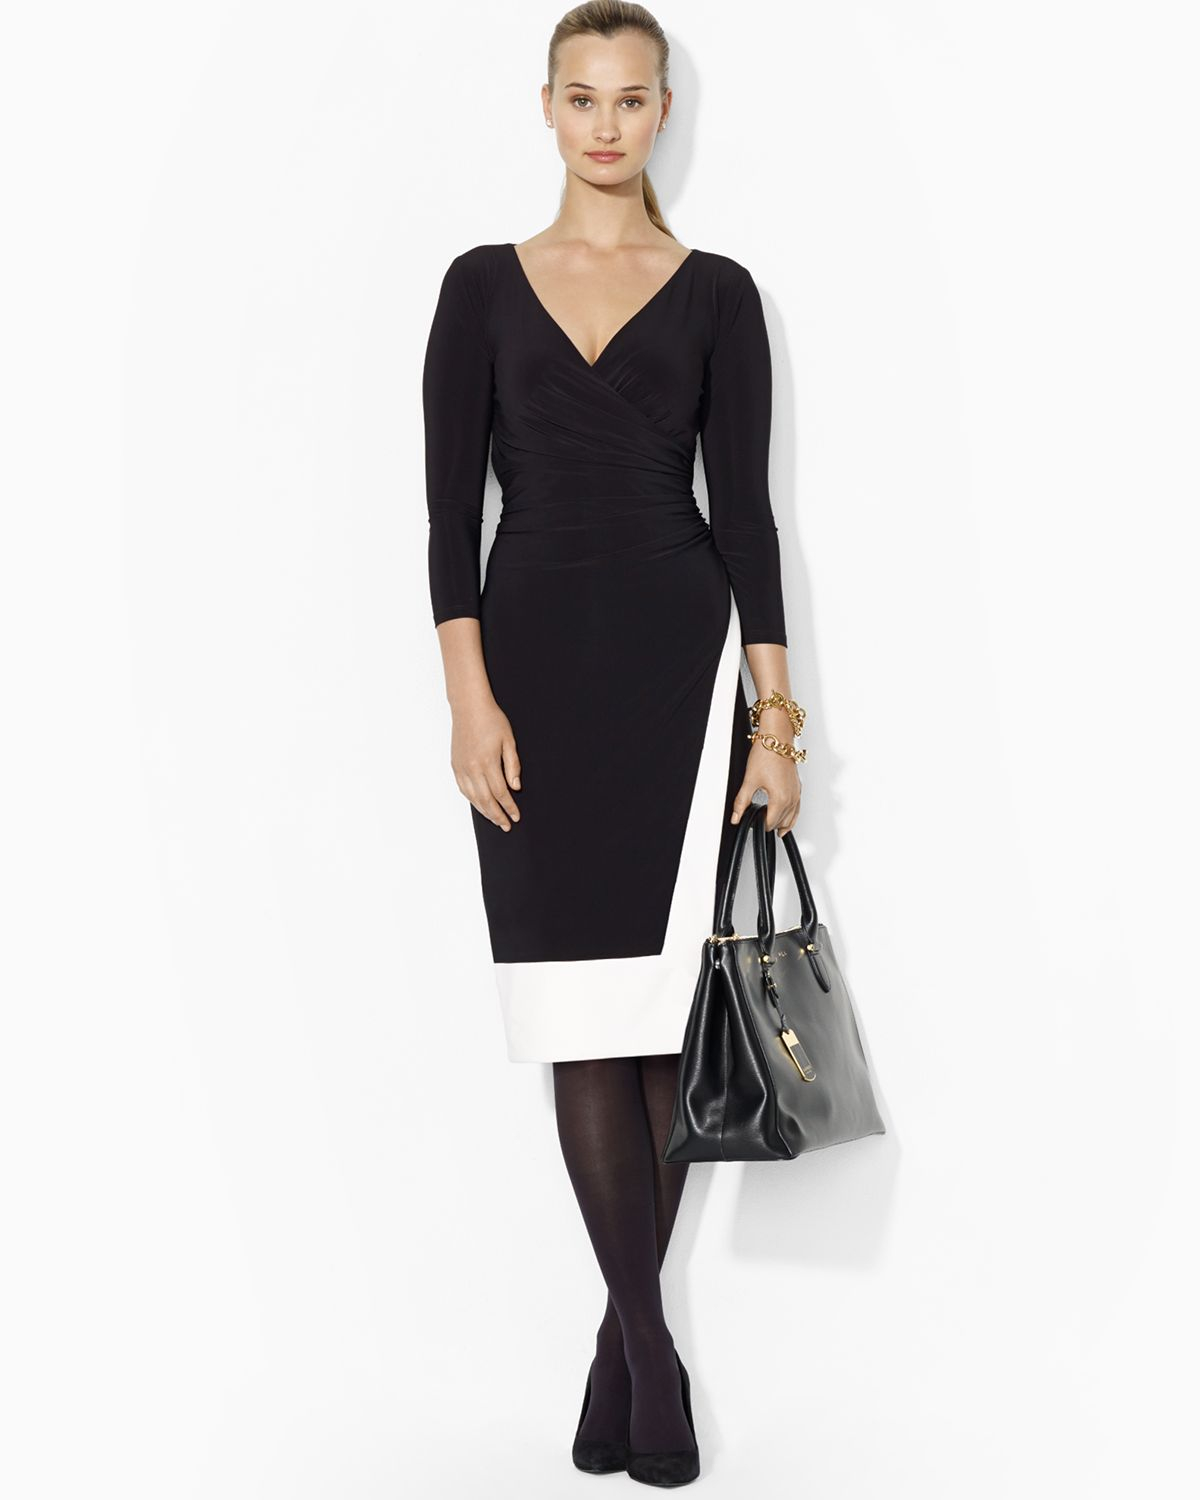 Lauren Ralph Lauren Väskor : Ralph lauren v neck two tone matte jersey dress in